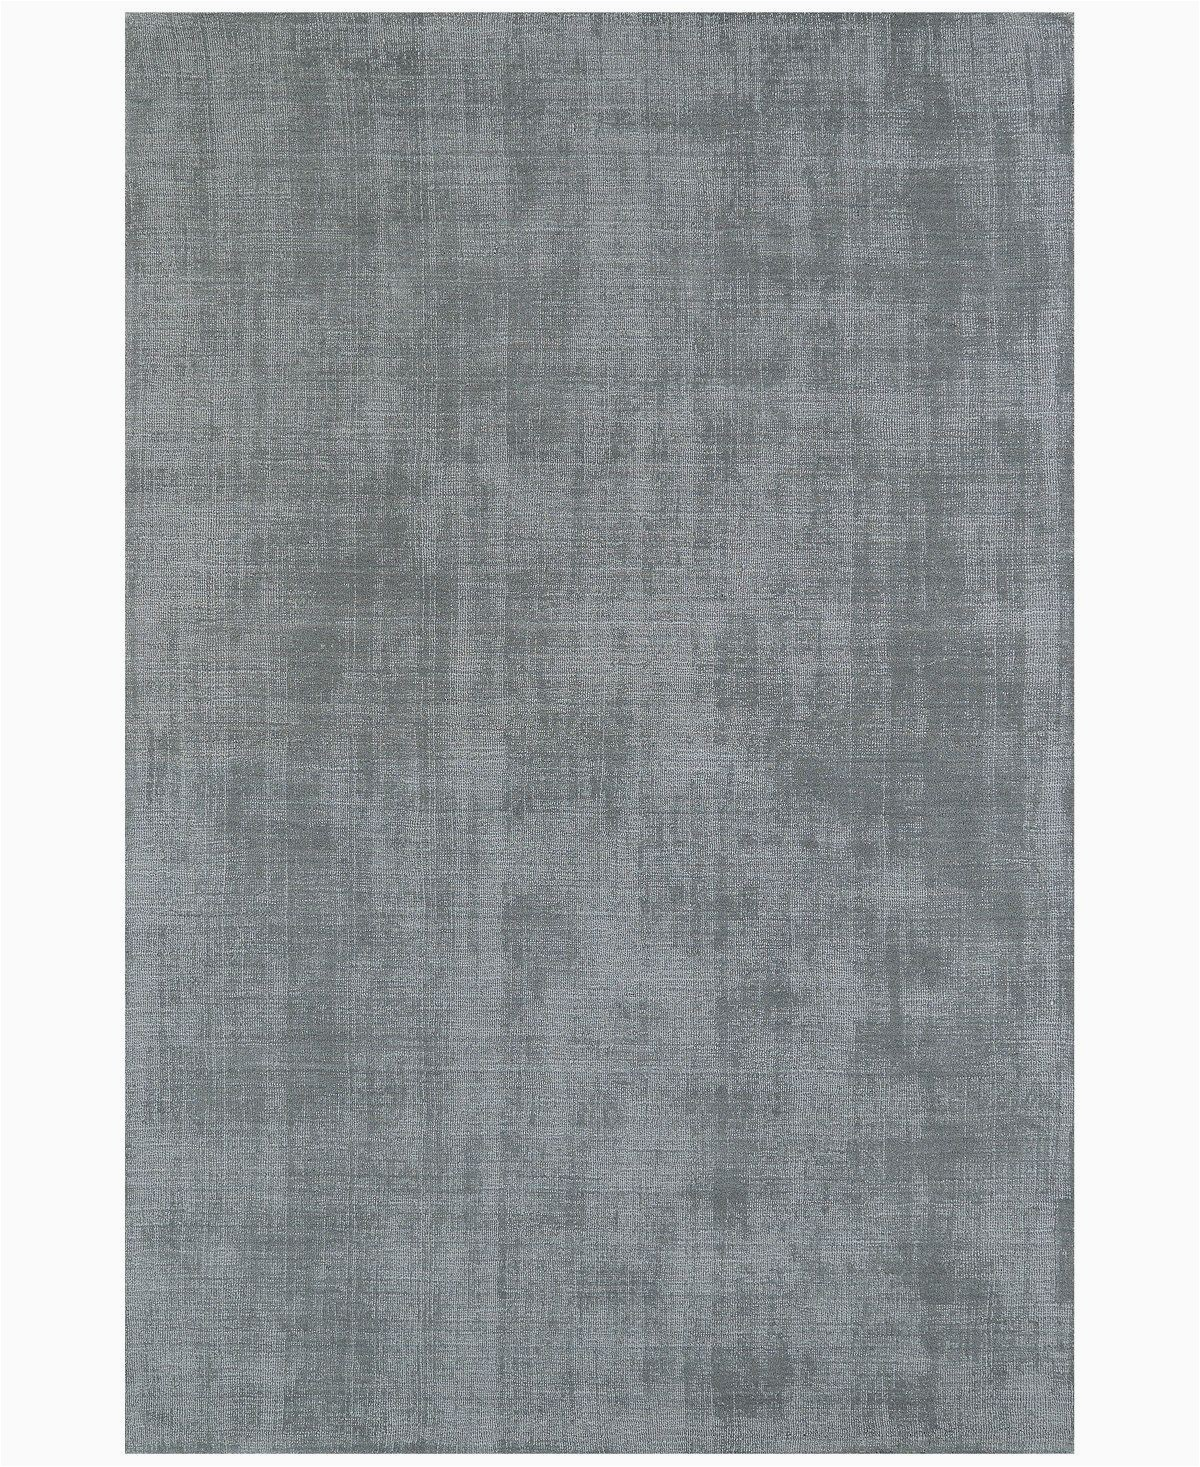 Macy S Dalyn area Rug Dalyn south Beach Silver 9 X 13 area Rug Rugs Rugs